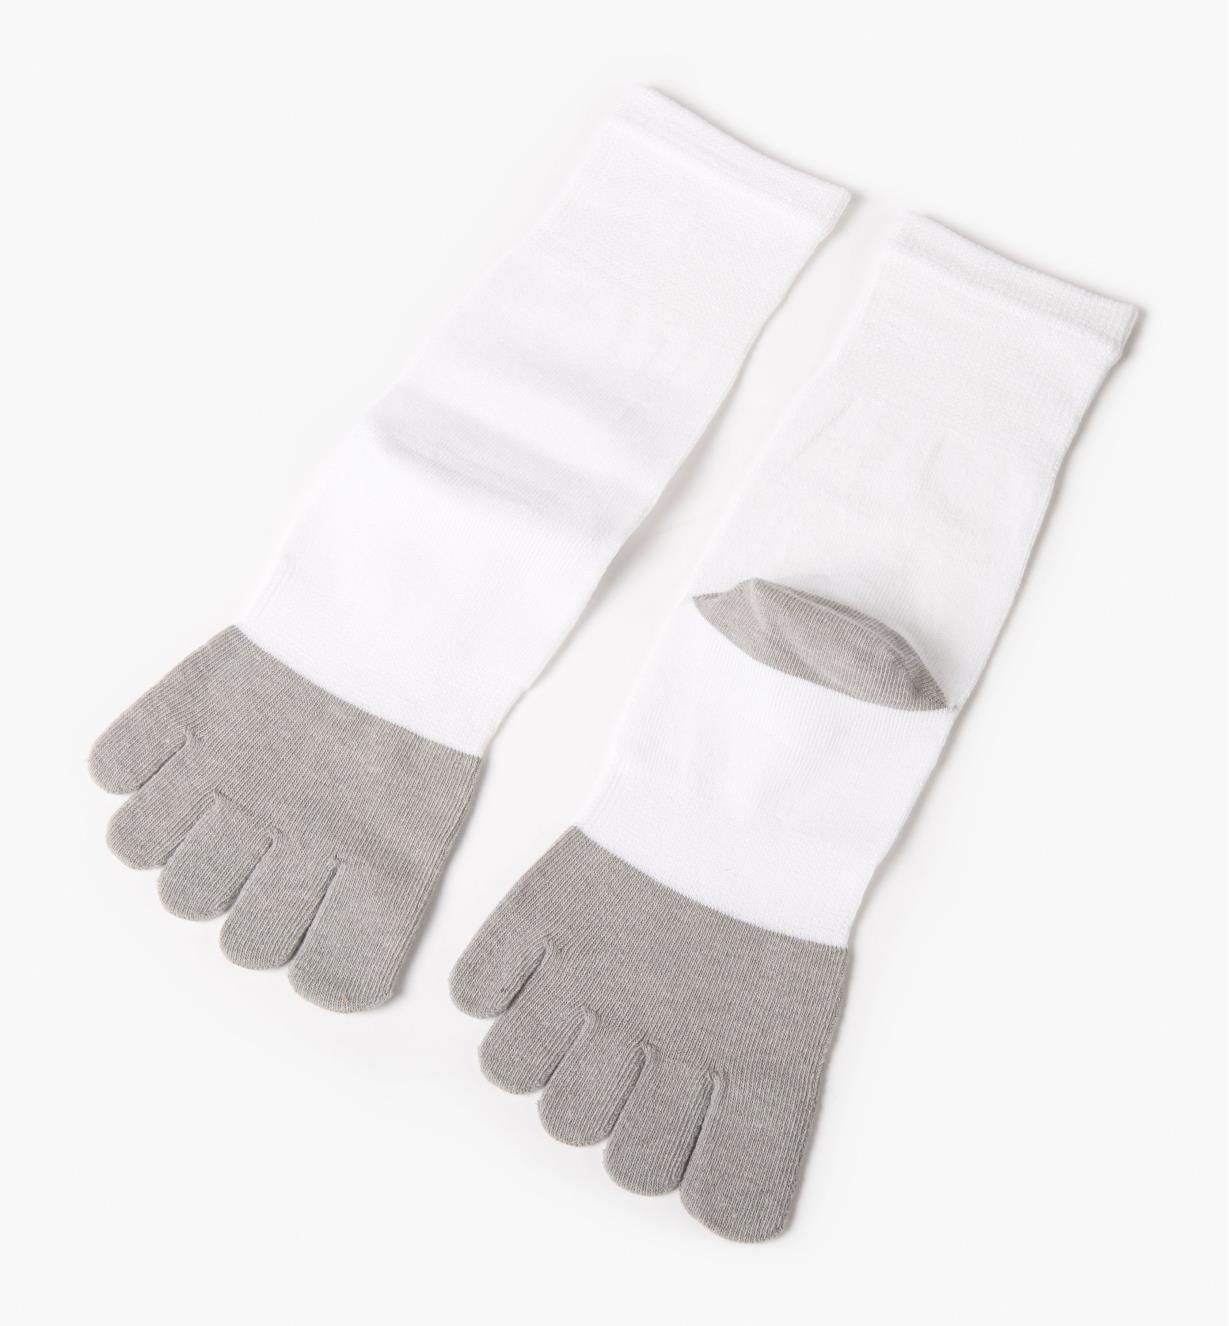 White/Gray Toe Socks